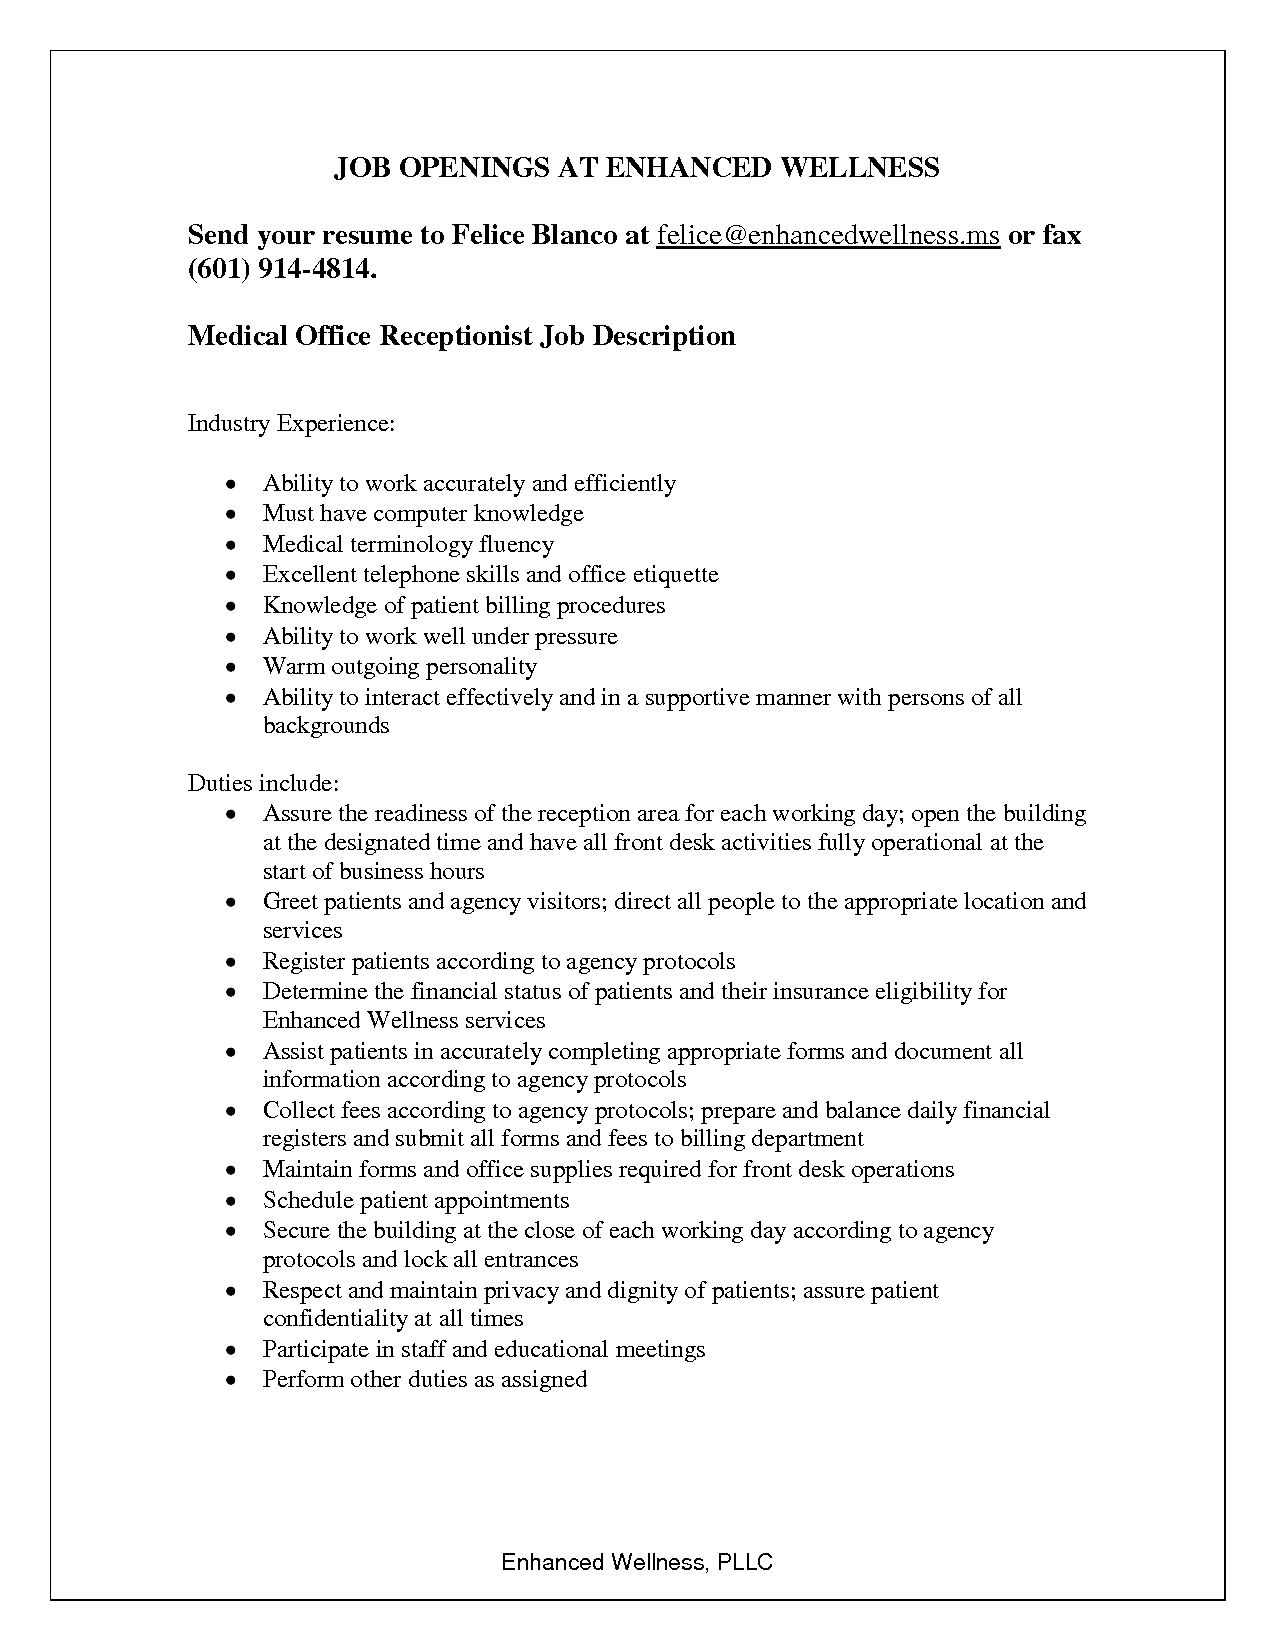 job opening resume for ofice receptionist job description